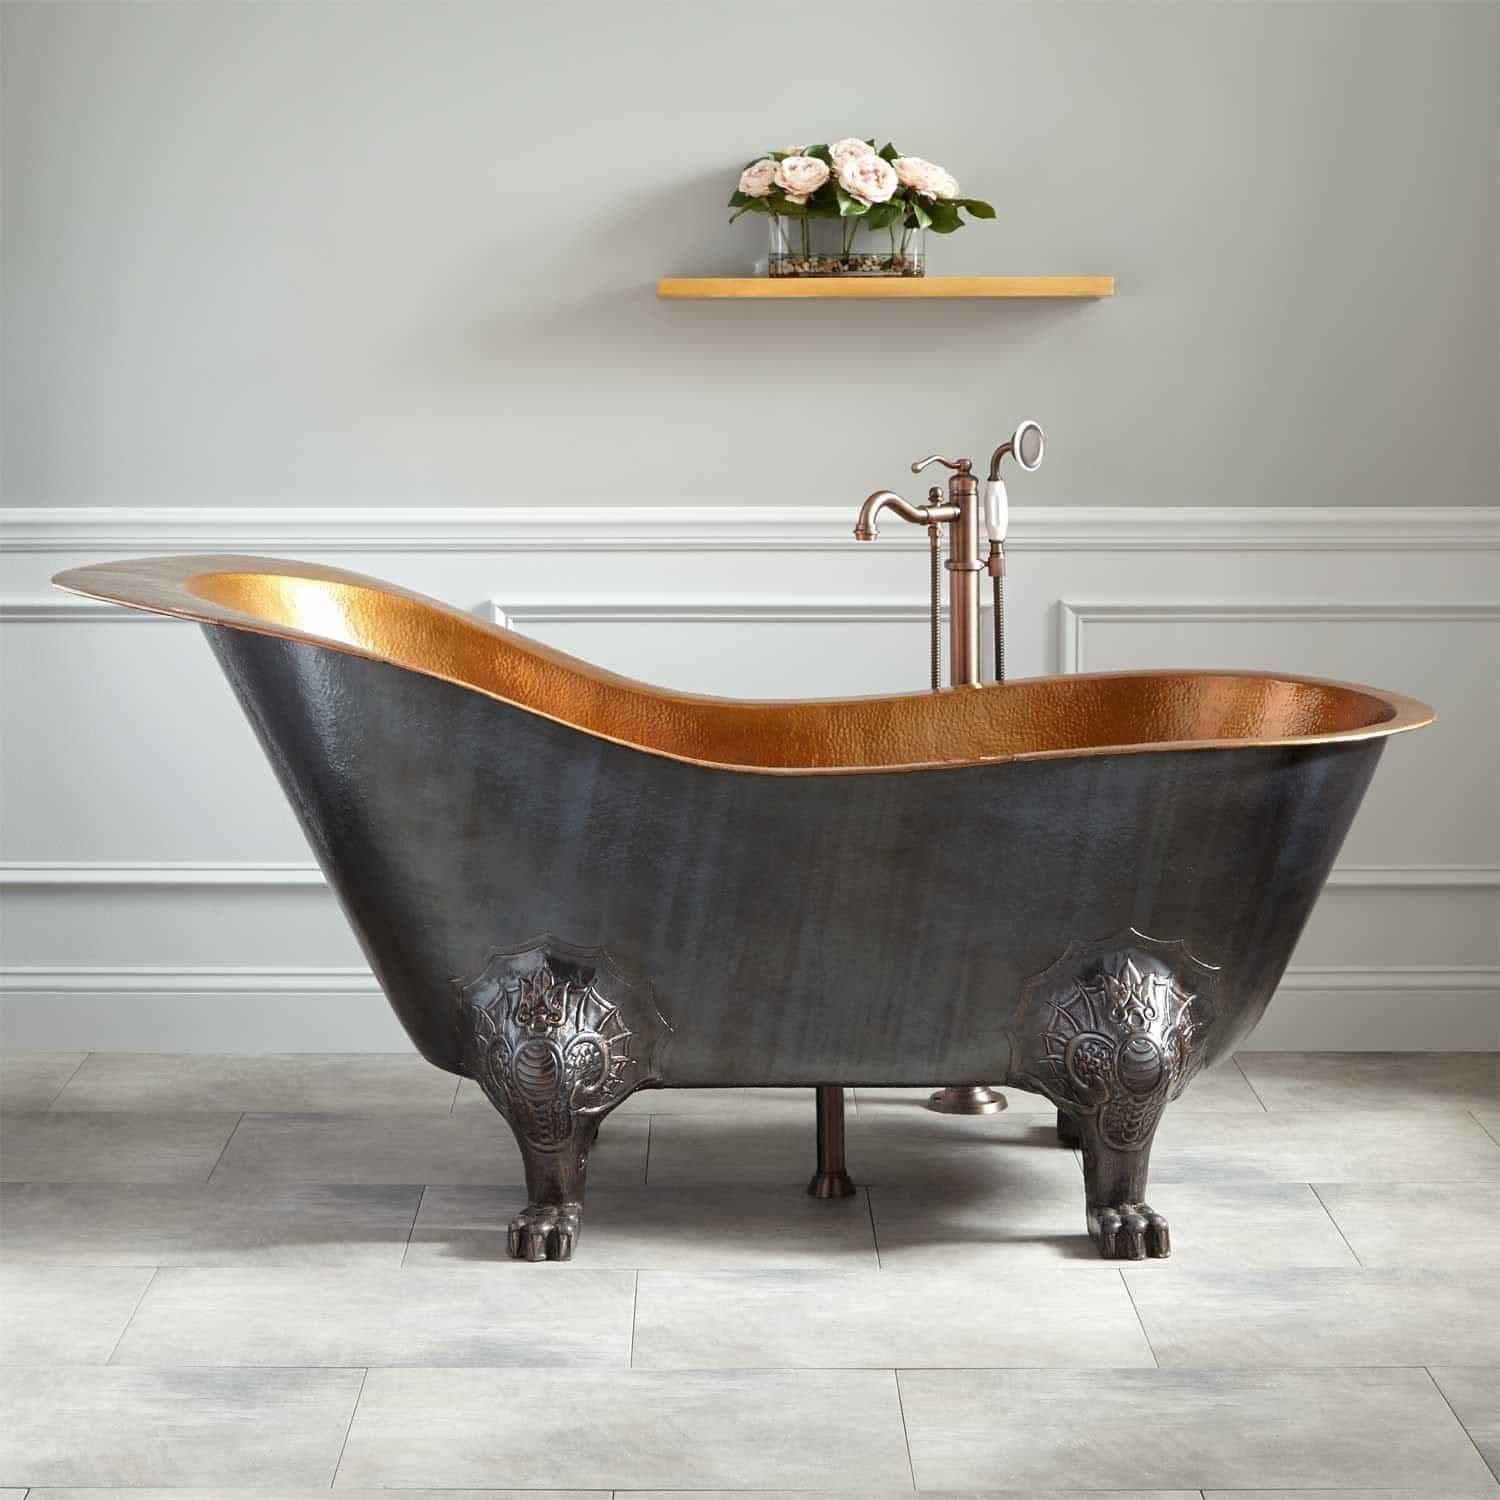 Cleaning Guidelines For Your Bathroom Clawfoot Tub